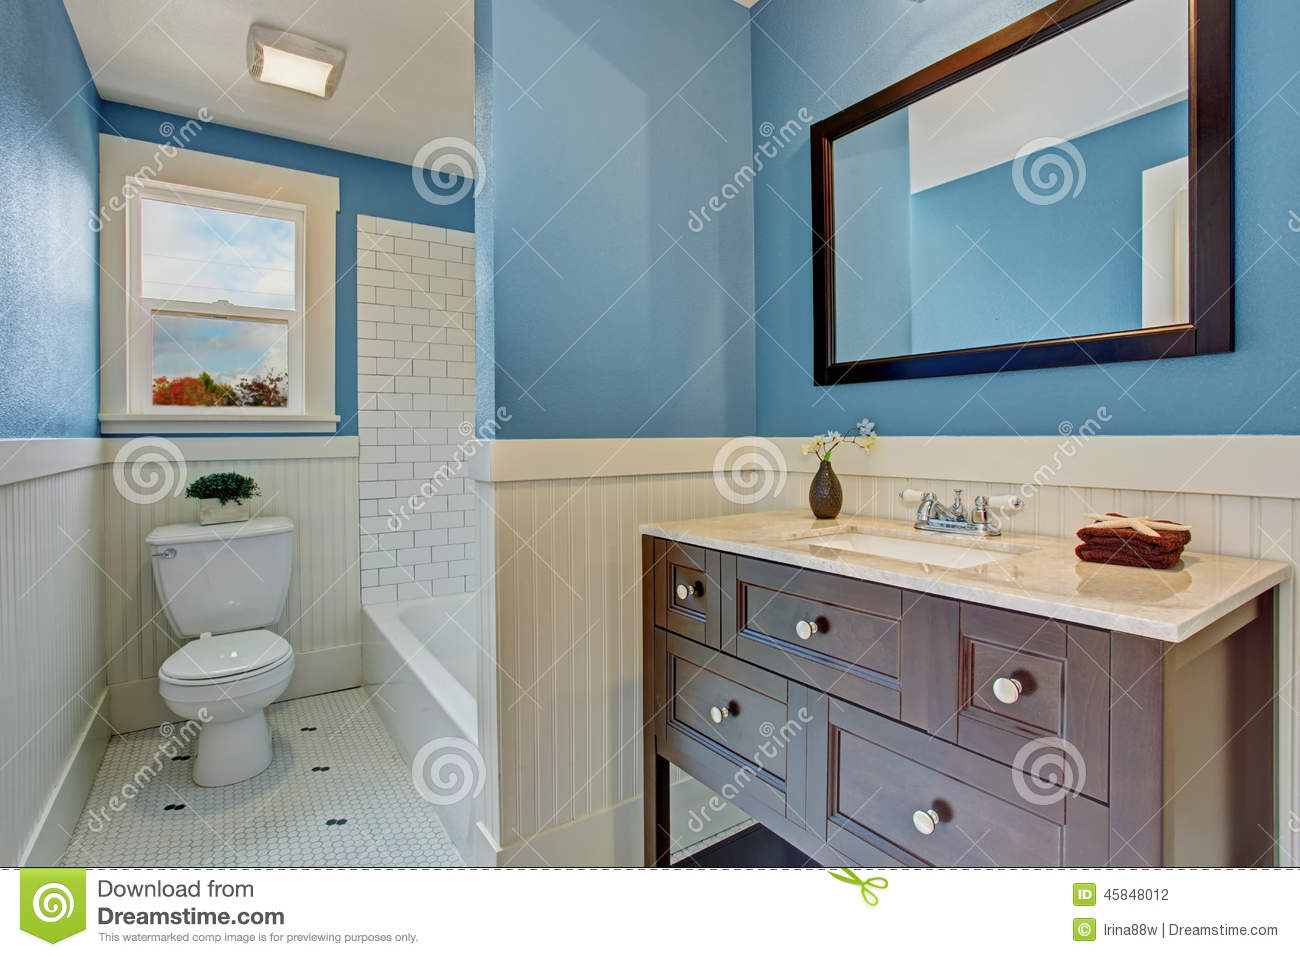 White And Blue Bathroom Interior Stock Photo - Image of room, toilet ...